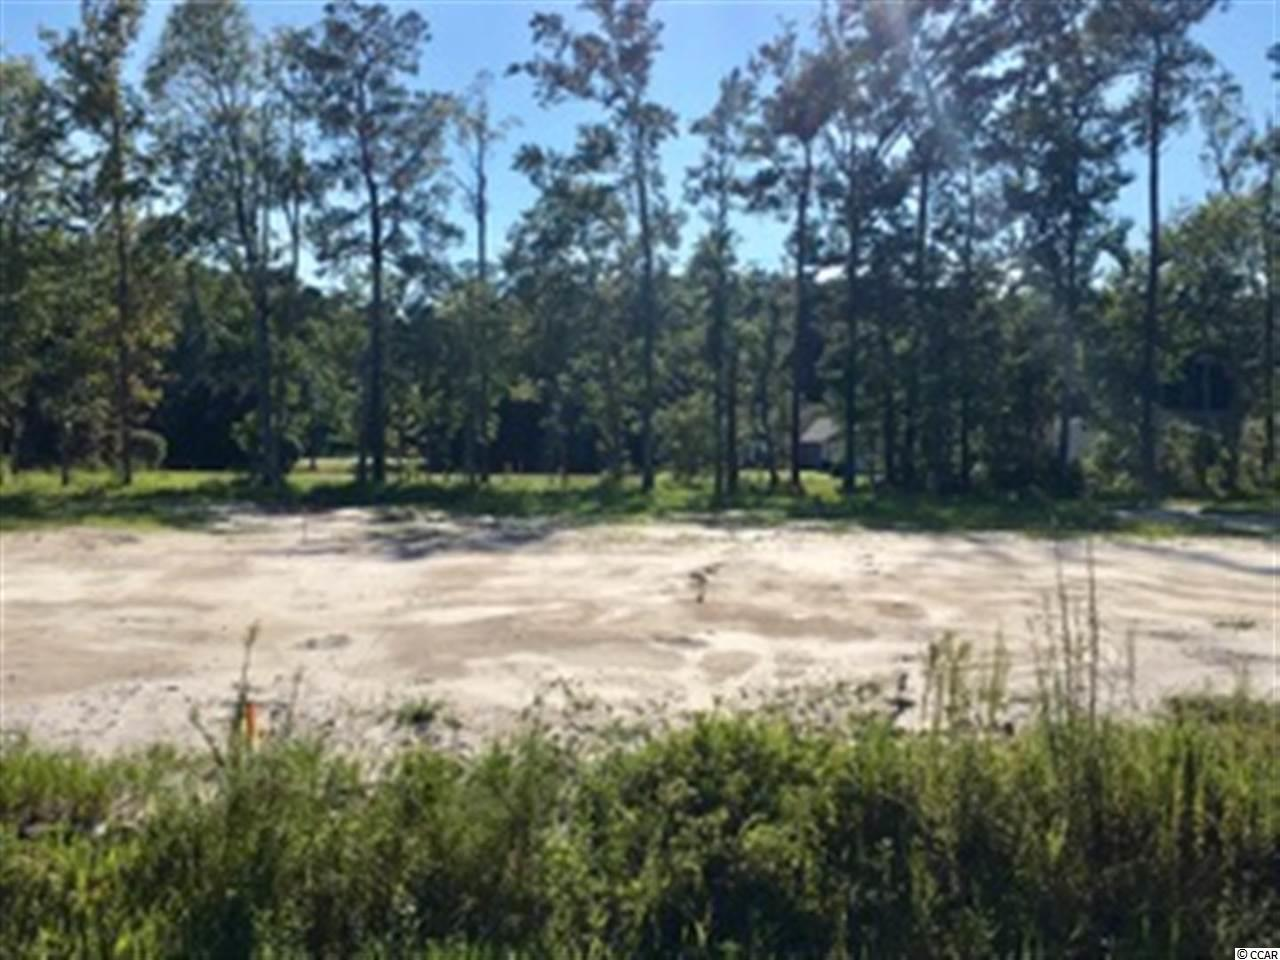 1/2 acre already cleared in highly desirable area of Little River with no hoa. No timeframe to build. Just minutes to the beach and all area attractions with easy access to area highways. Several lots together able to be purchased as package. Schedule your showing now.